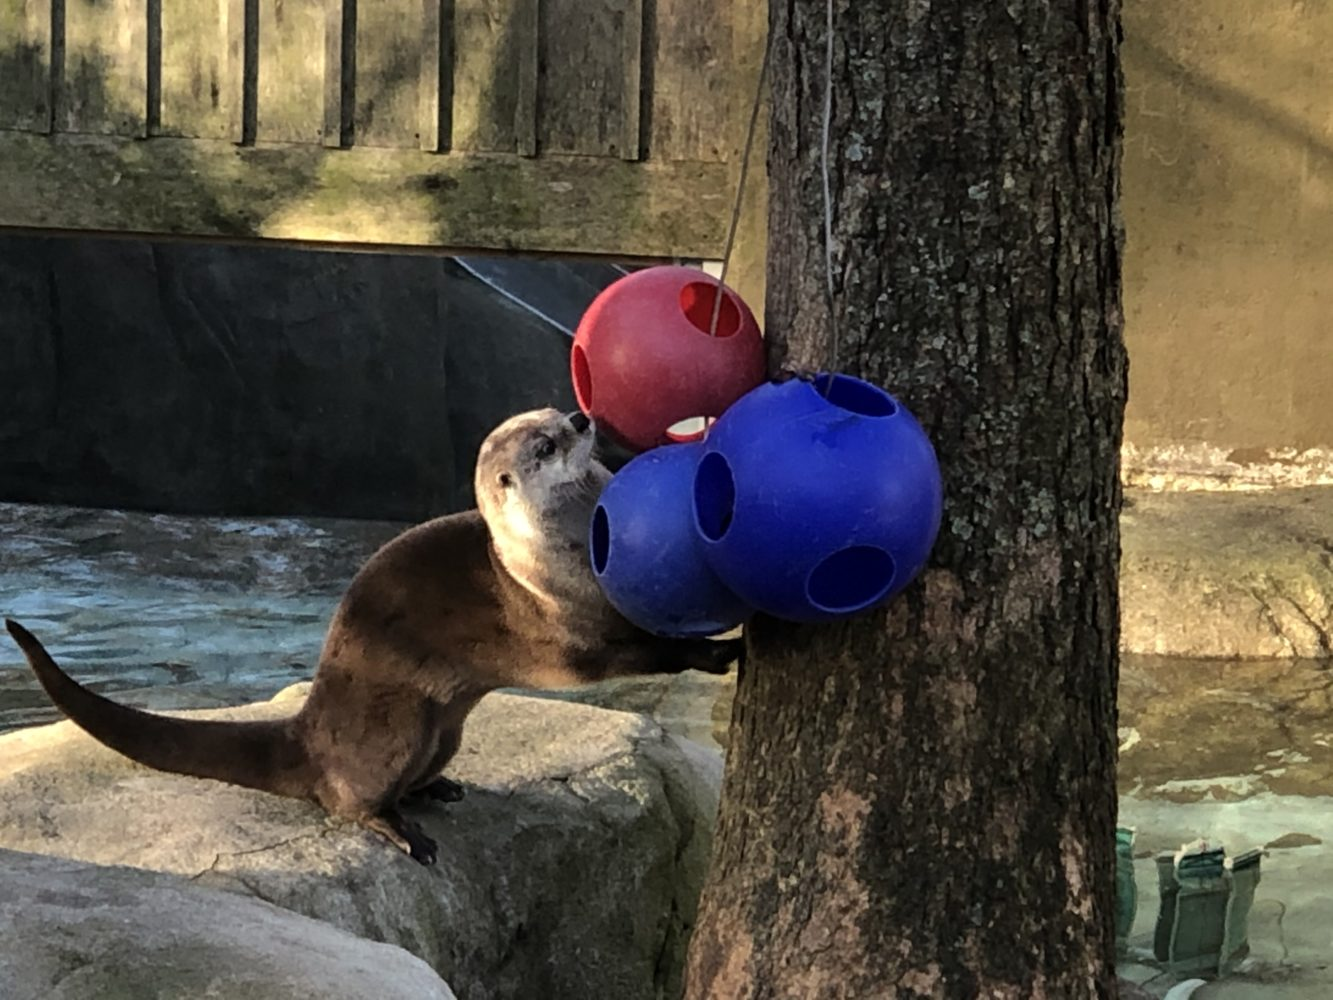 An otter engages with puzzle enrichment.